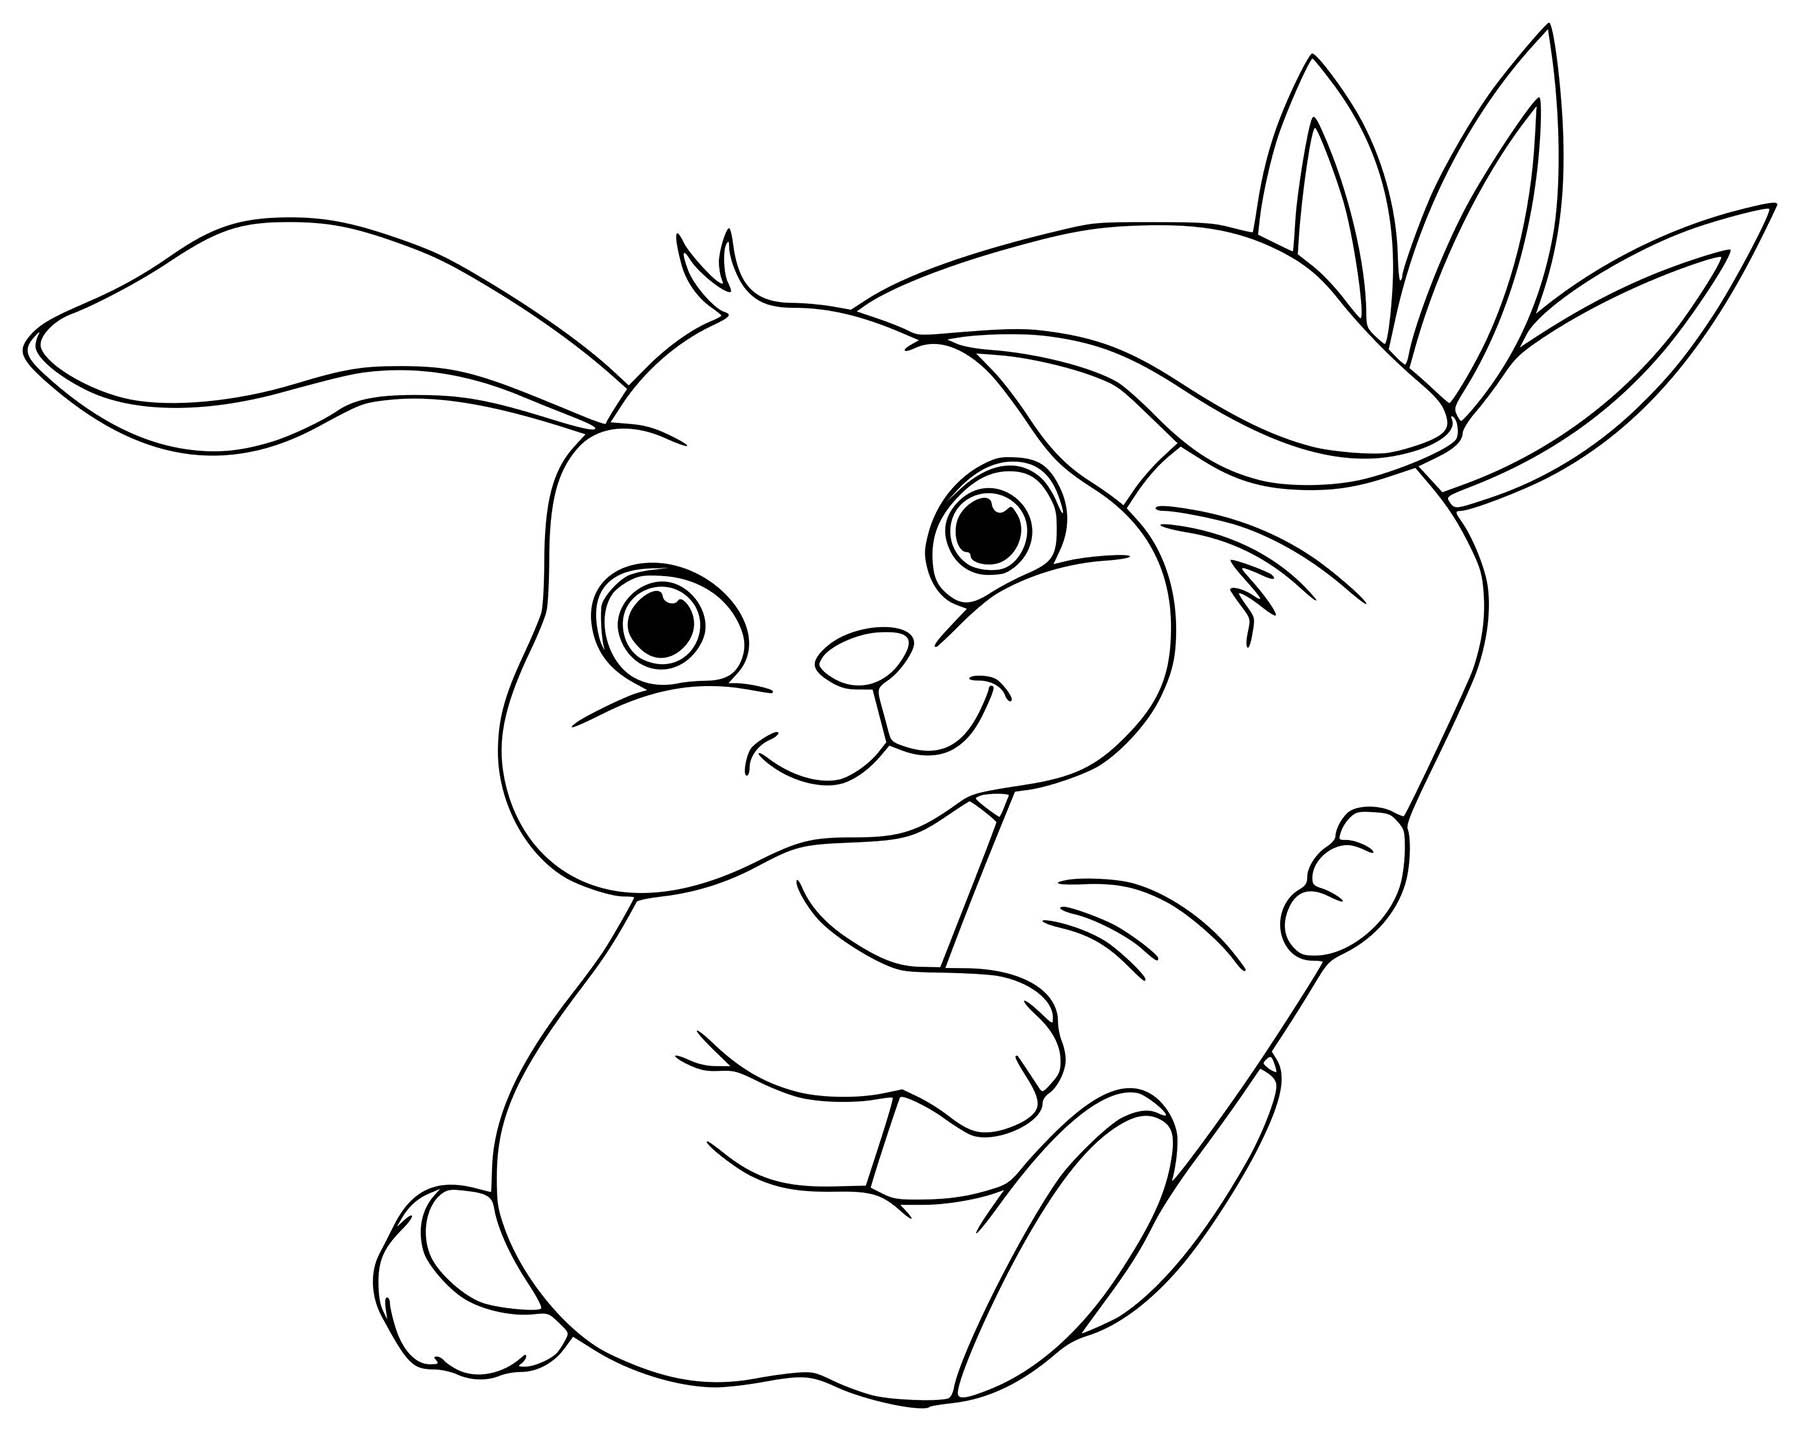 Rabbit for children - Rabbit Kids Coloring Pages